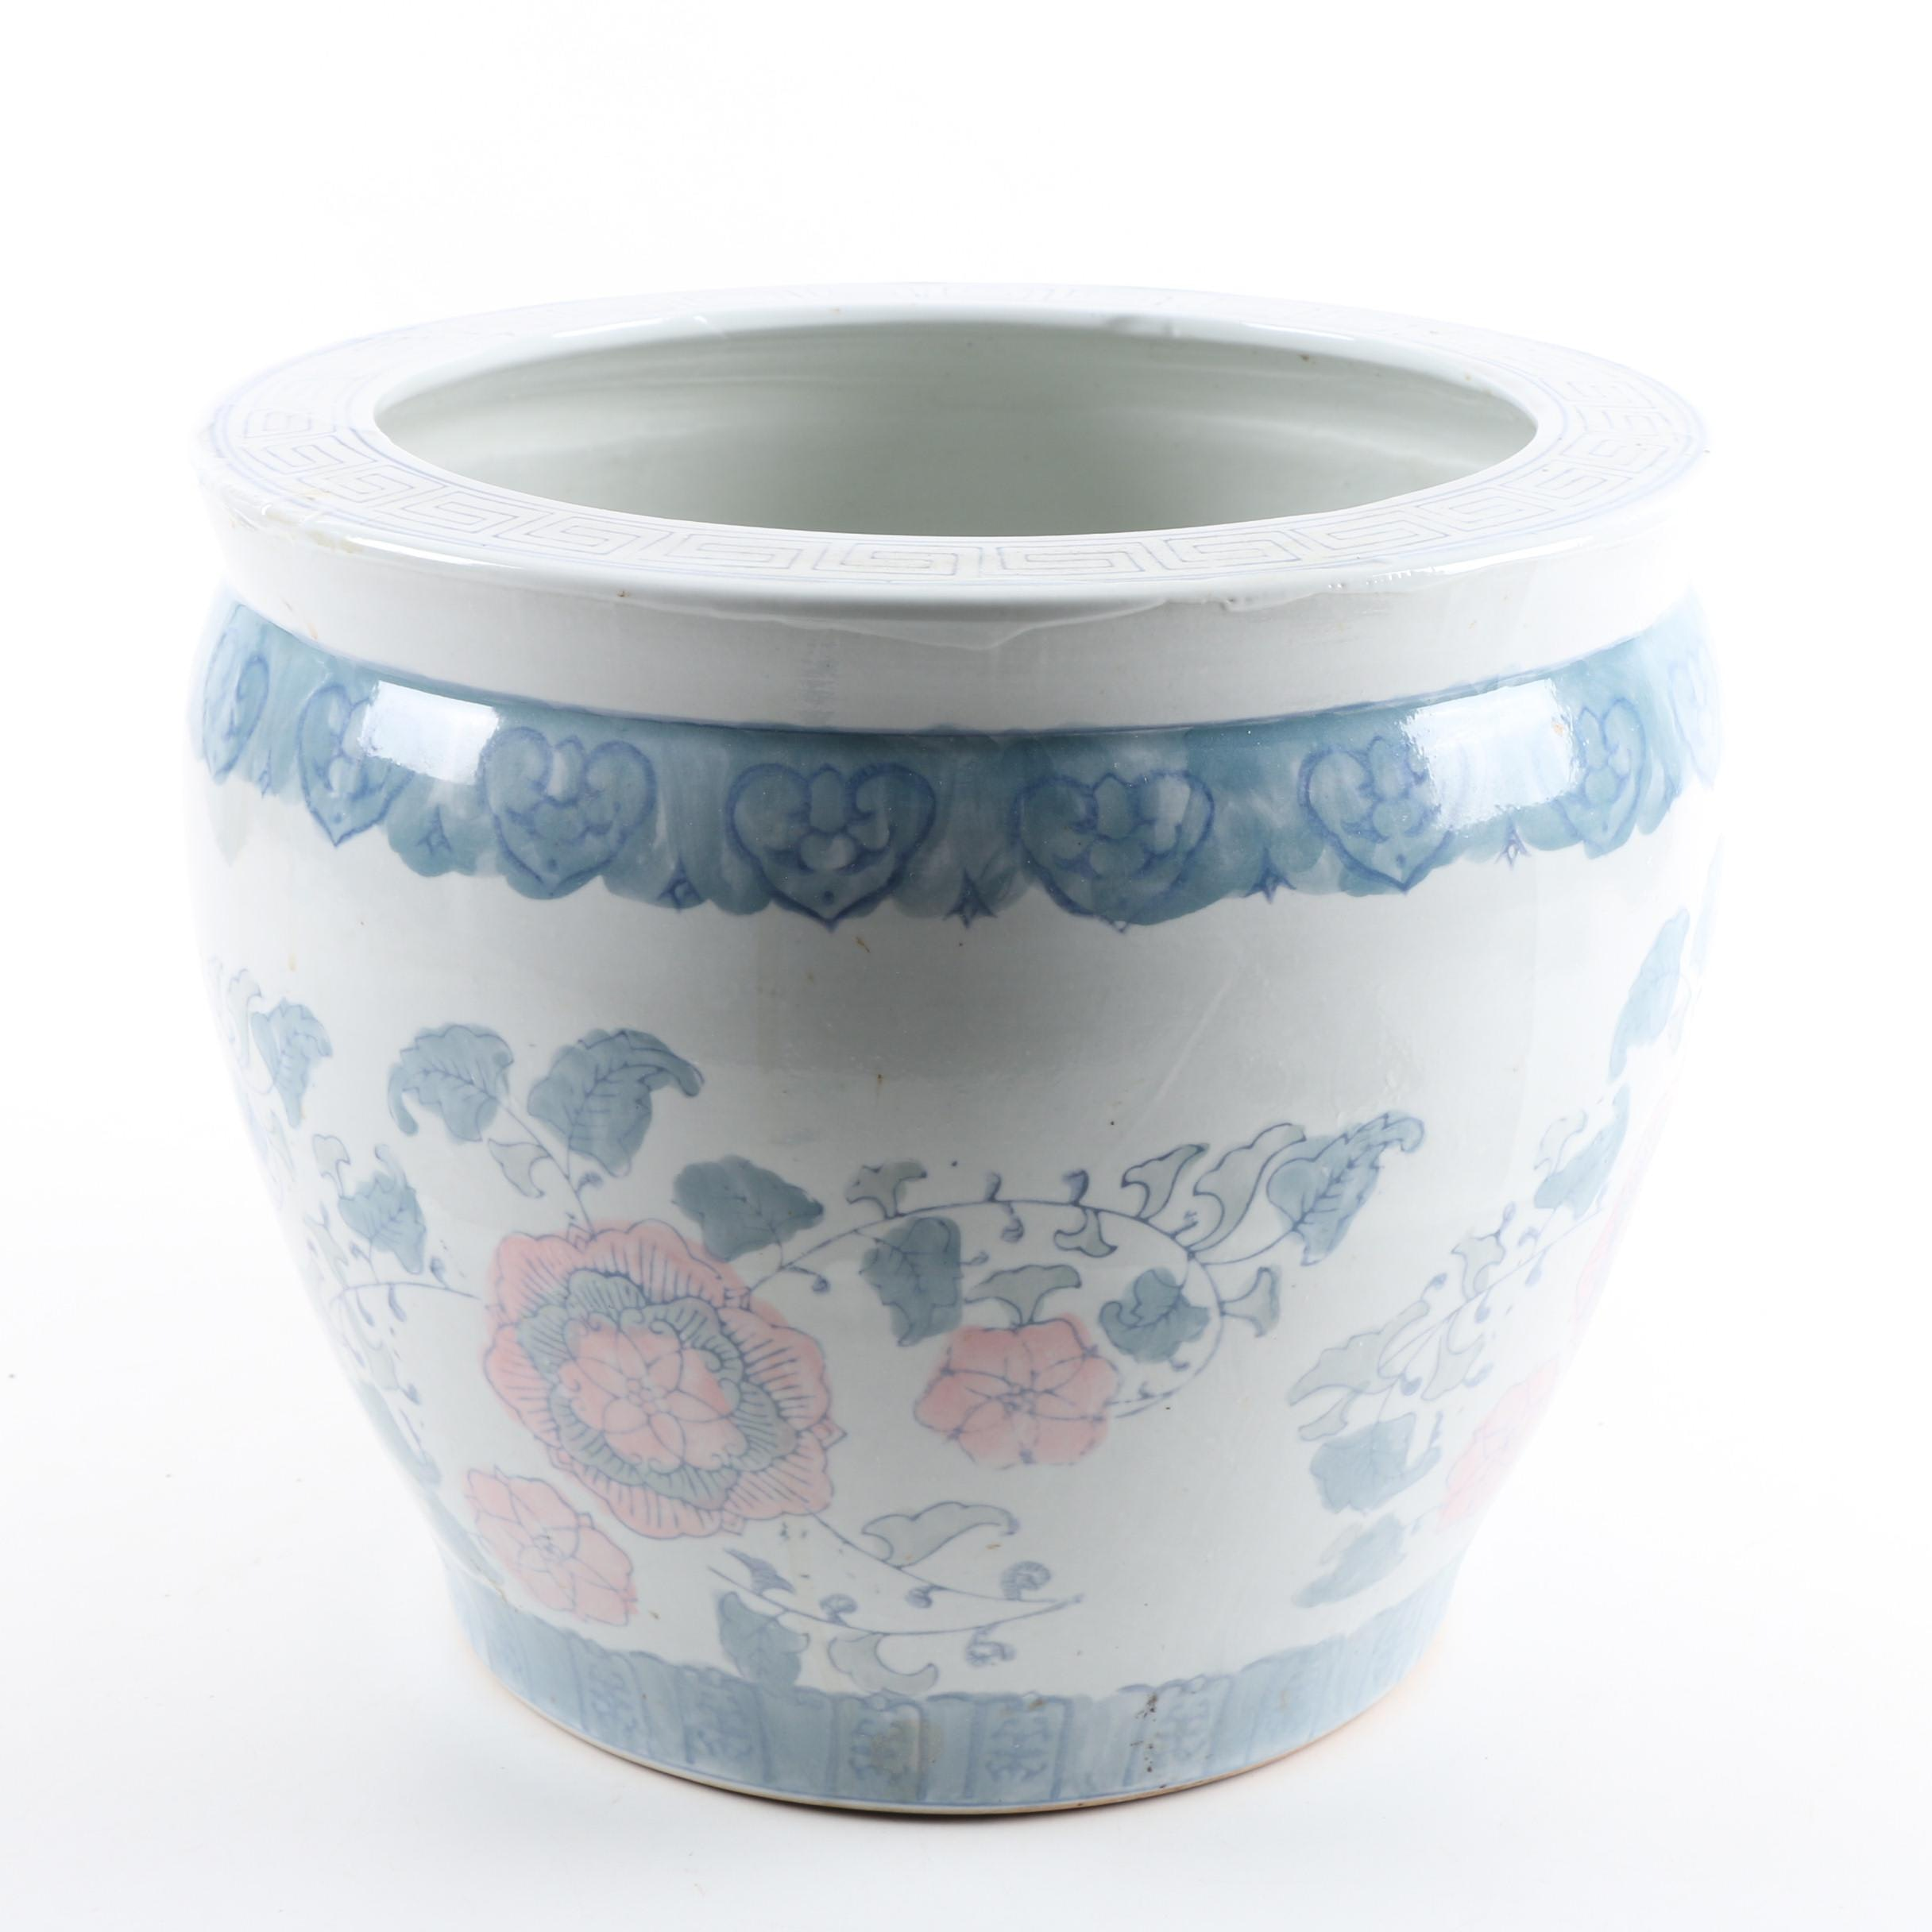 Vintage Chinese Hand-Painted Ceramic Planter